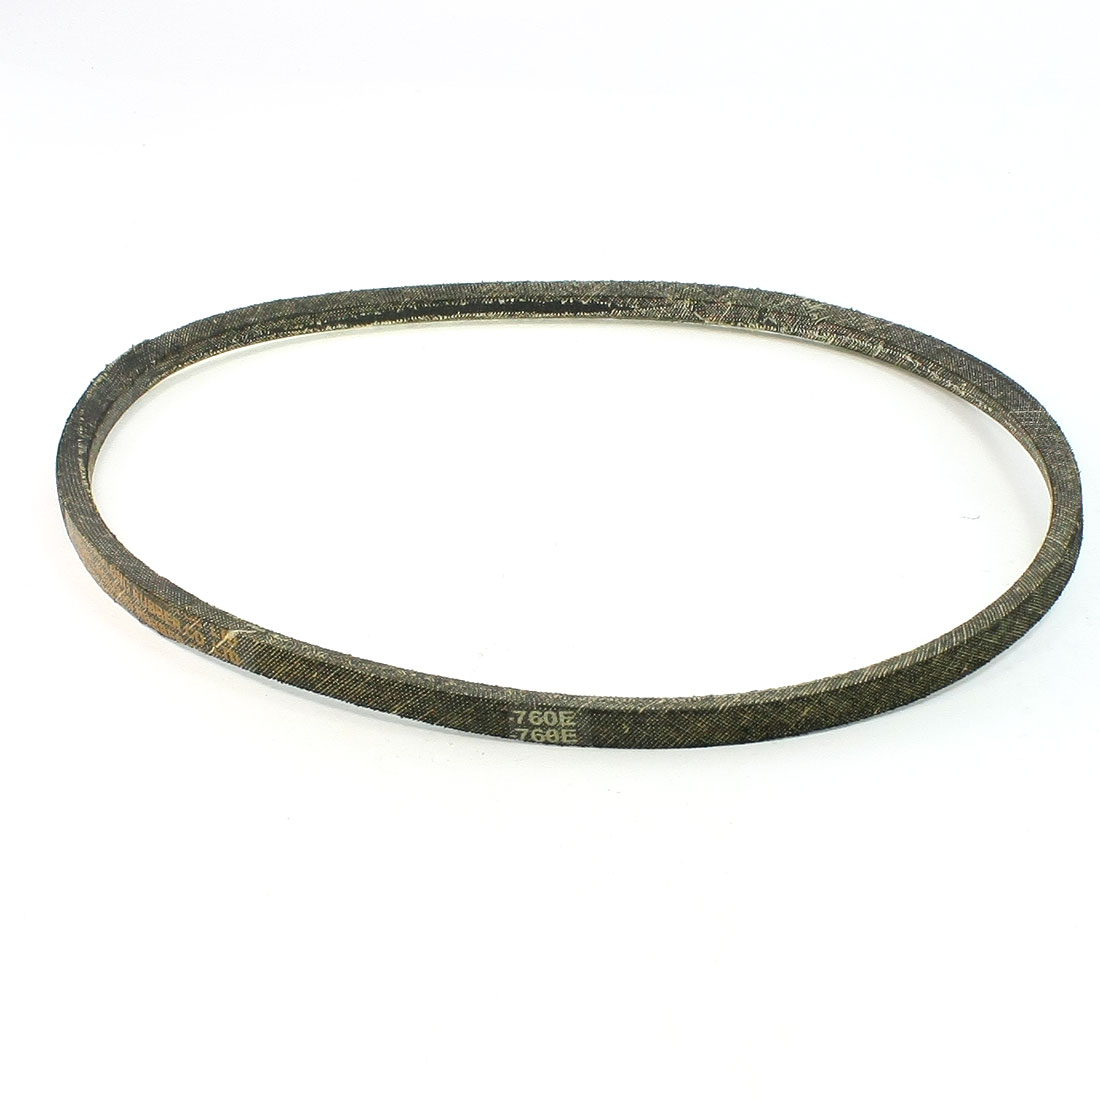 A-760E Washing Machine Motor A Type V Belt Girth 760mm 29 59/64 Inches